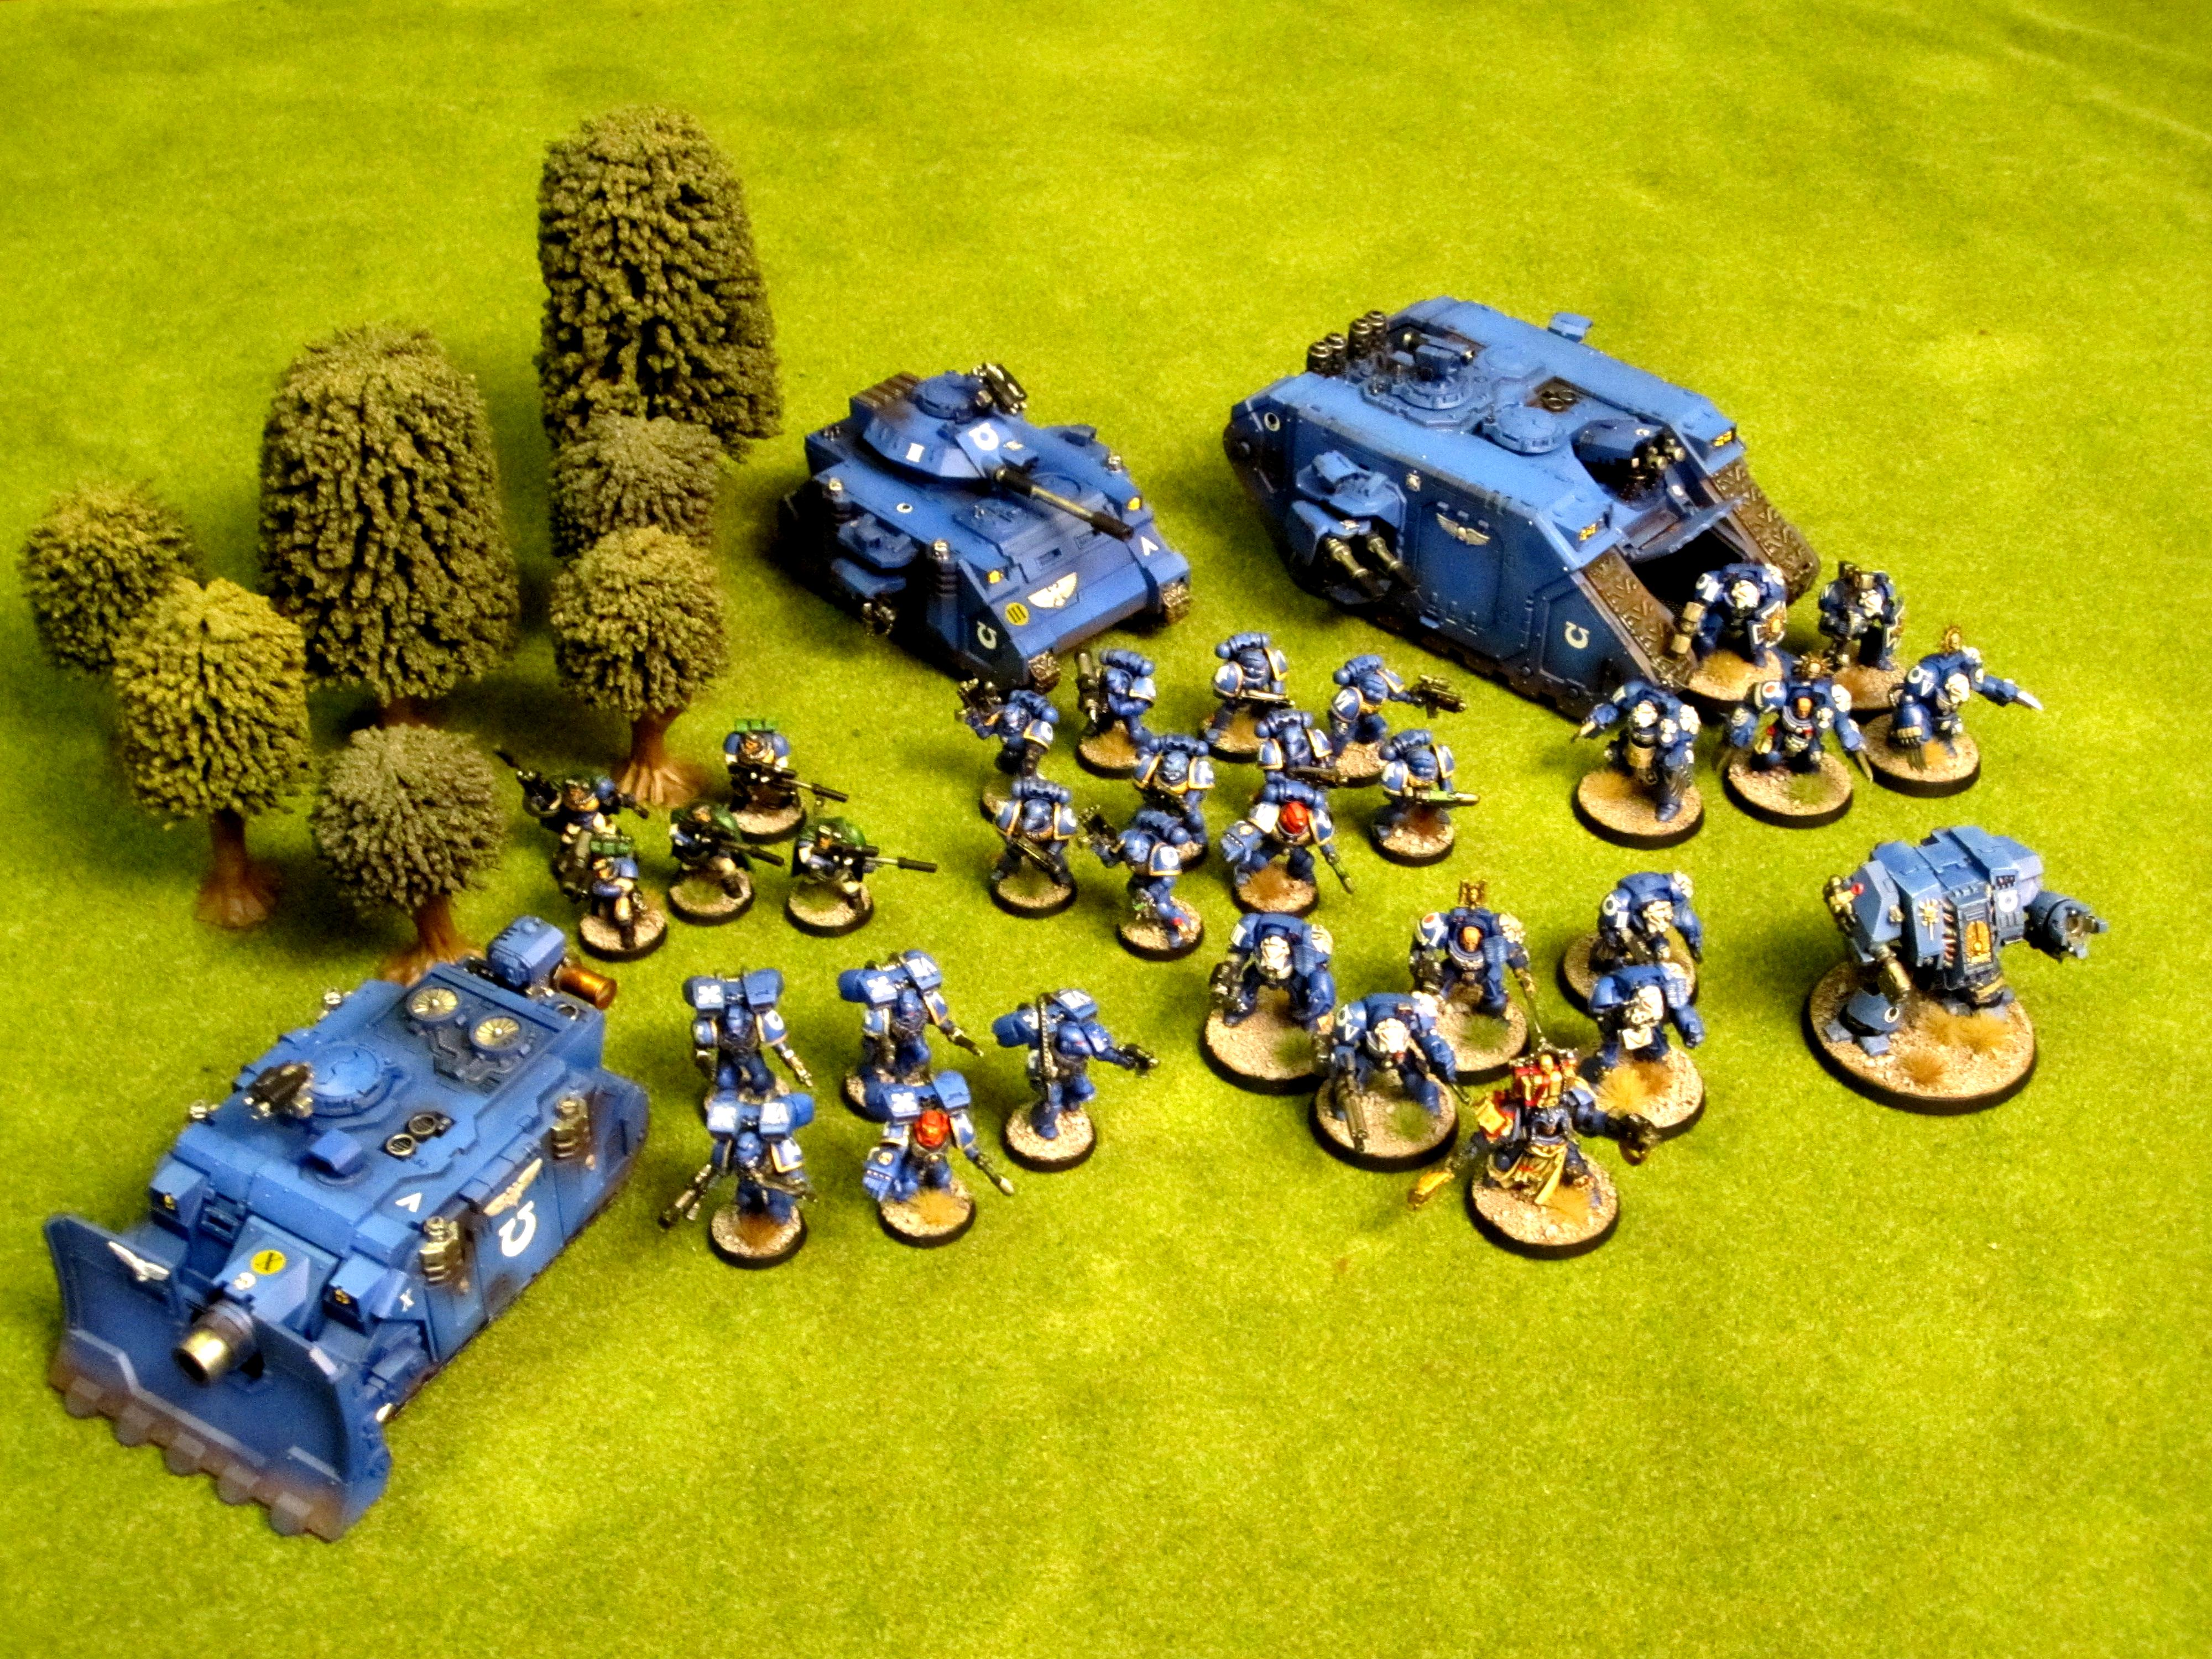 Assault, Commission, Dreadnought, Elites, Fast Attack, Heavy Support, Land Raider, Predator, Pro Painted, Scouts, Space Marines, Tactical, Terminator Armor, Troops, Vindicator, Warhammer 40,000